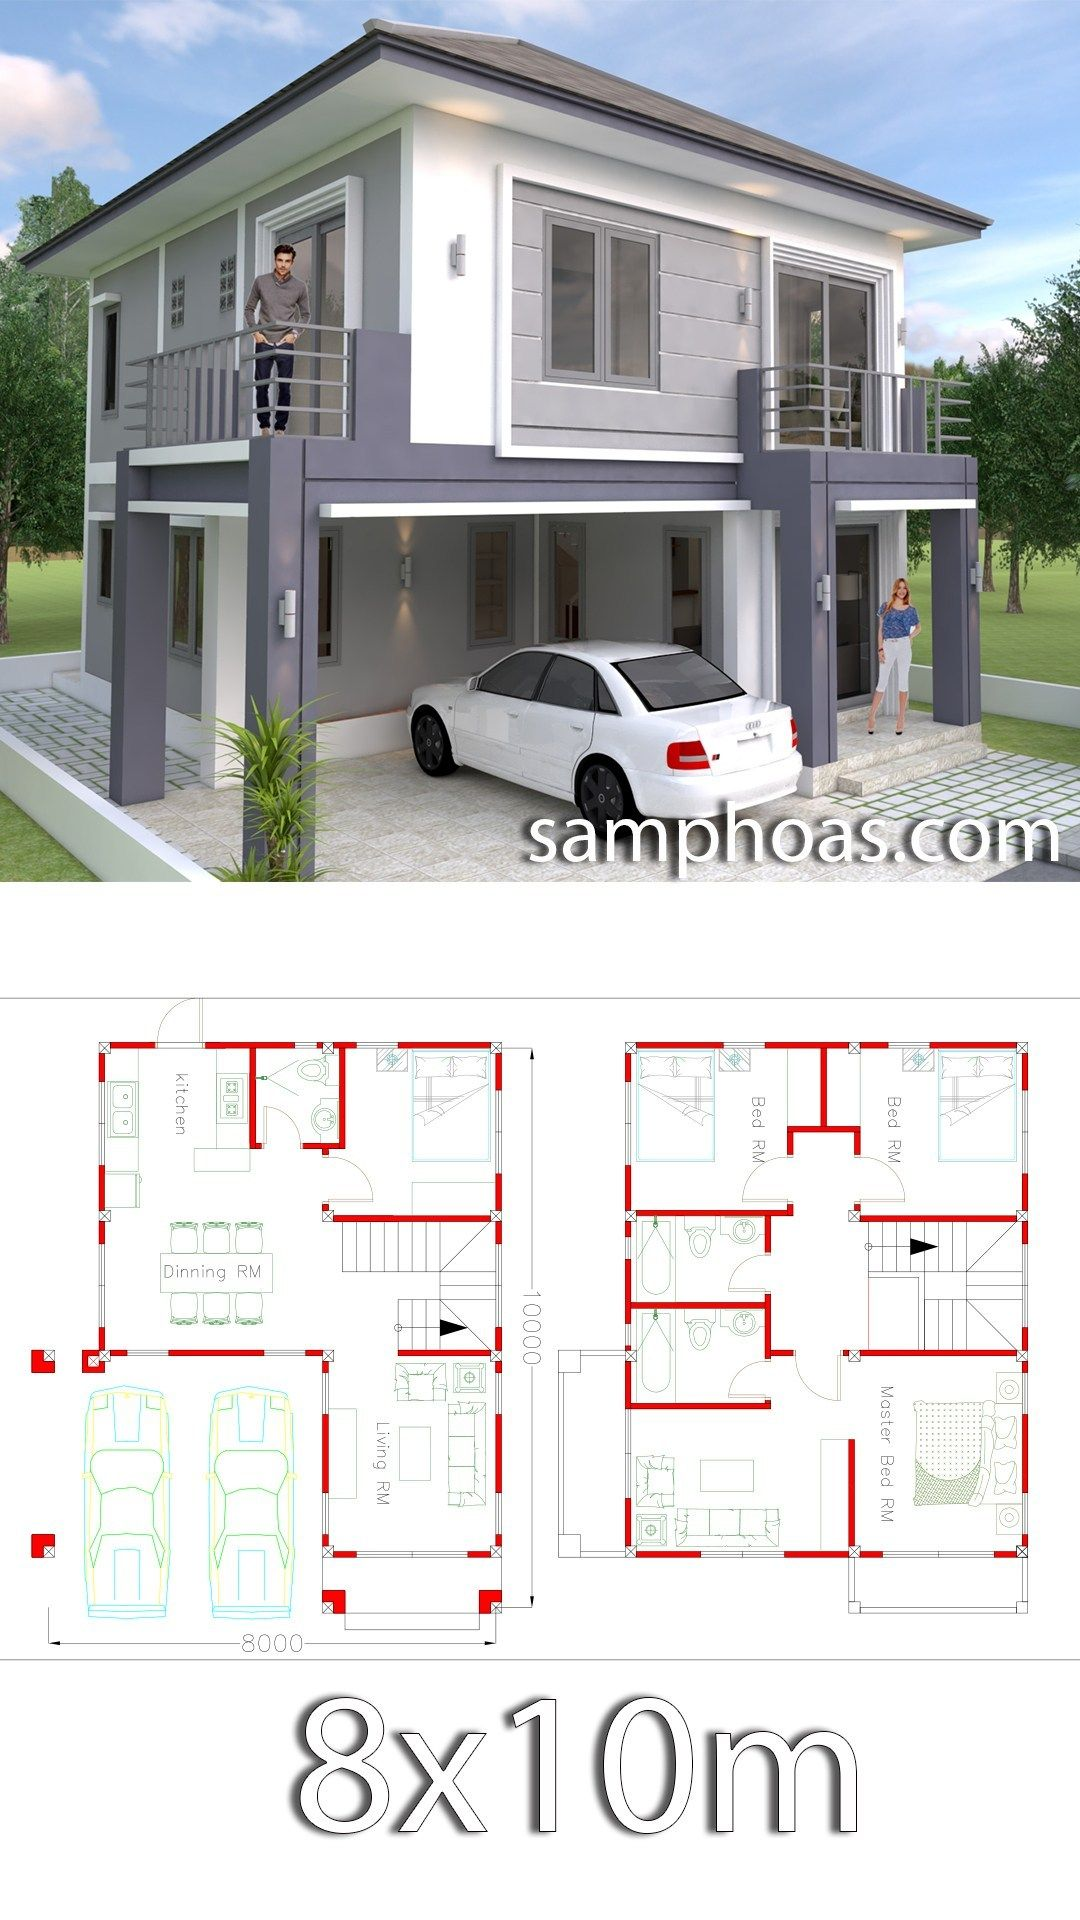 4 Bedrooms Home Design Plan 8x10m Samphoas Plansearch Simple House Design Duplex House Plans Simple House Plans